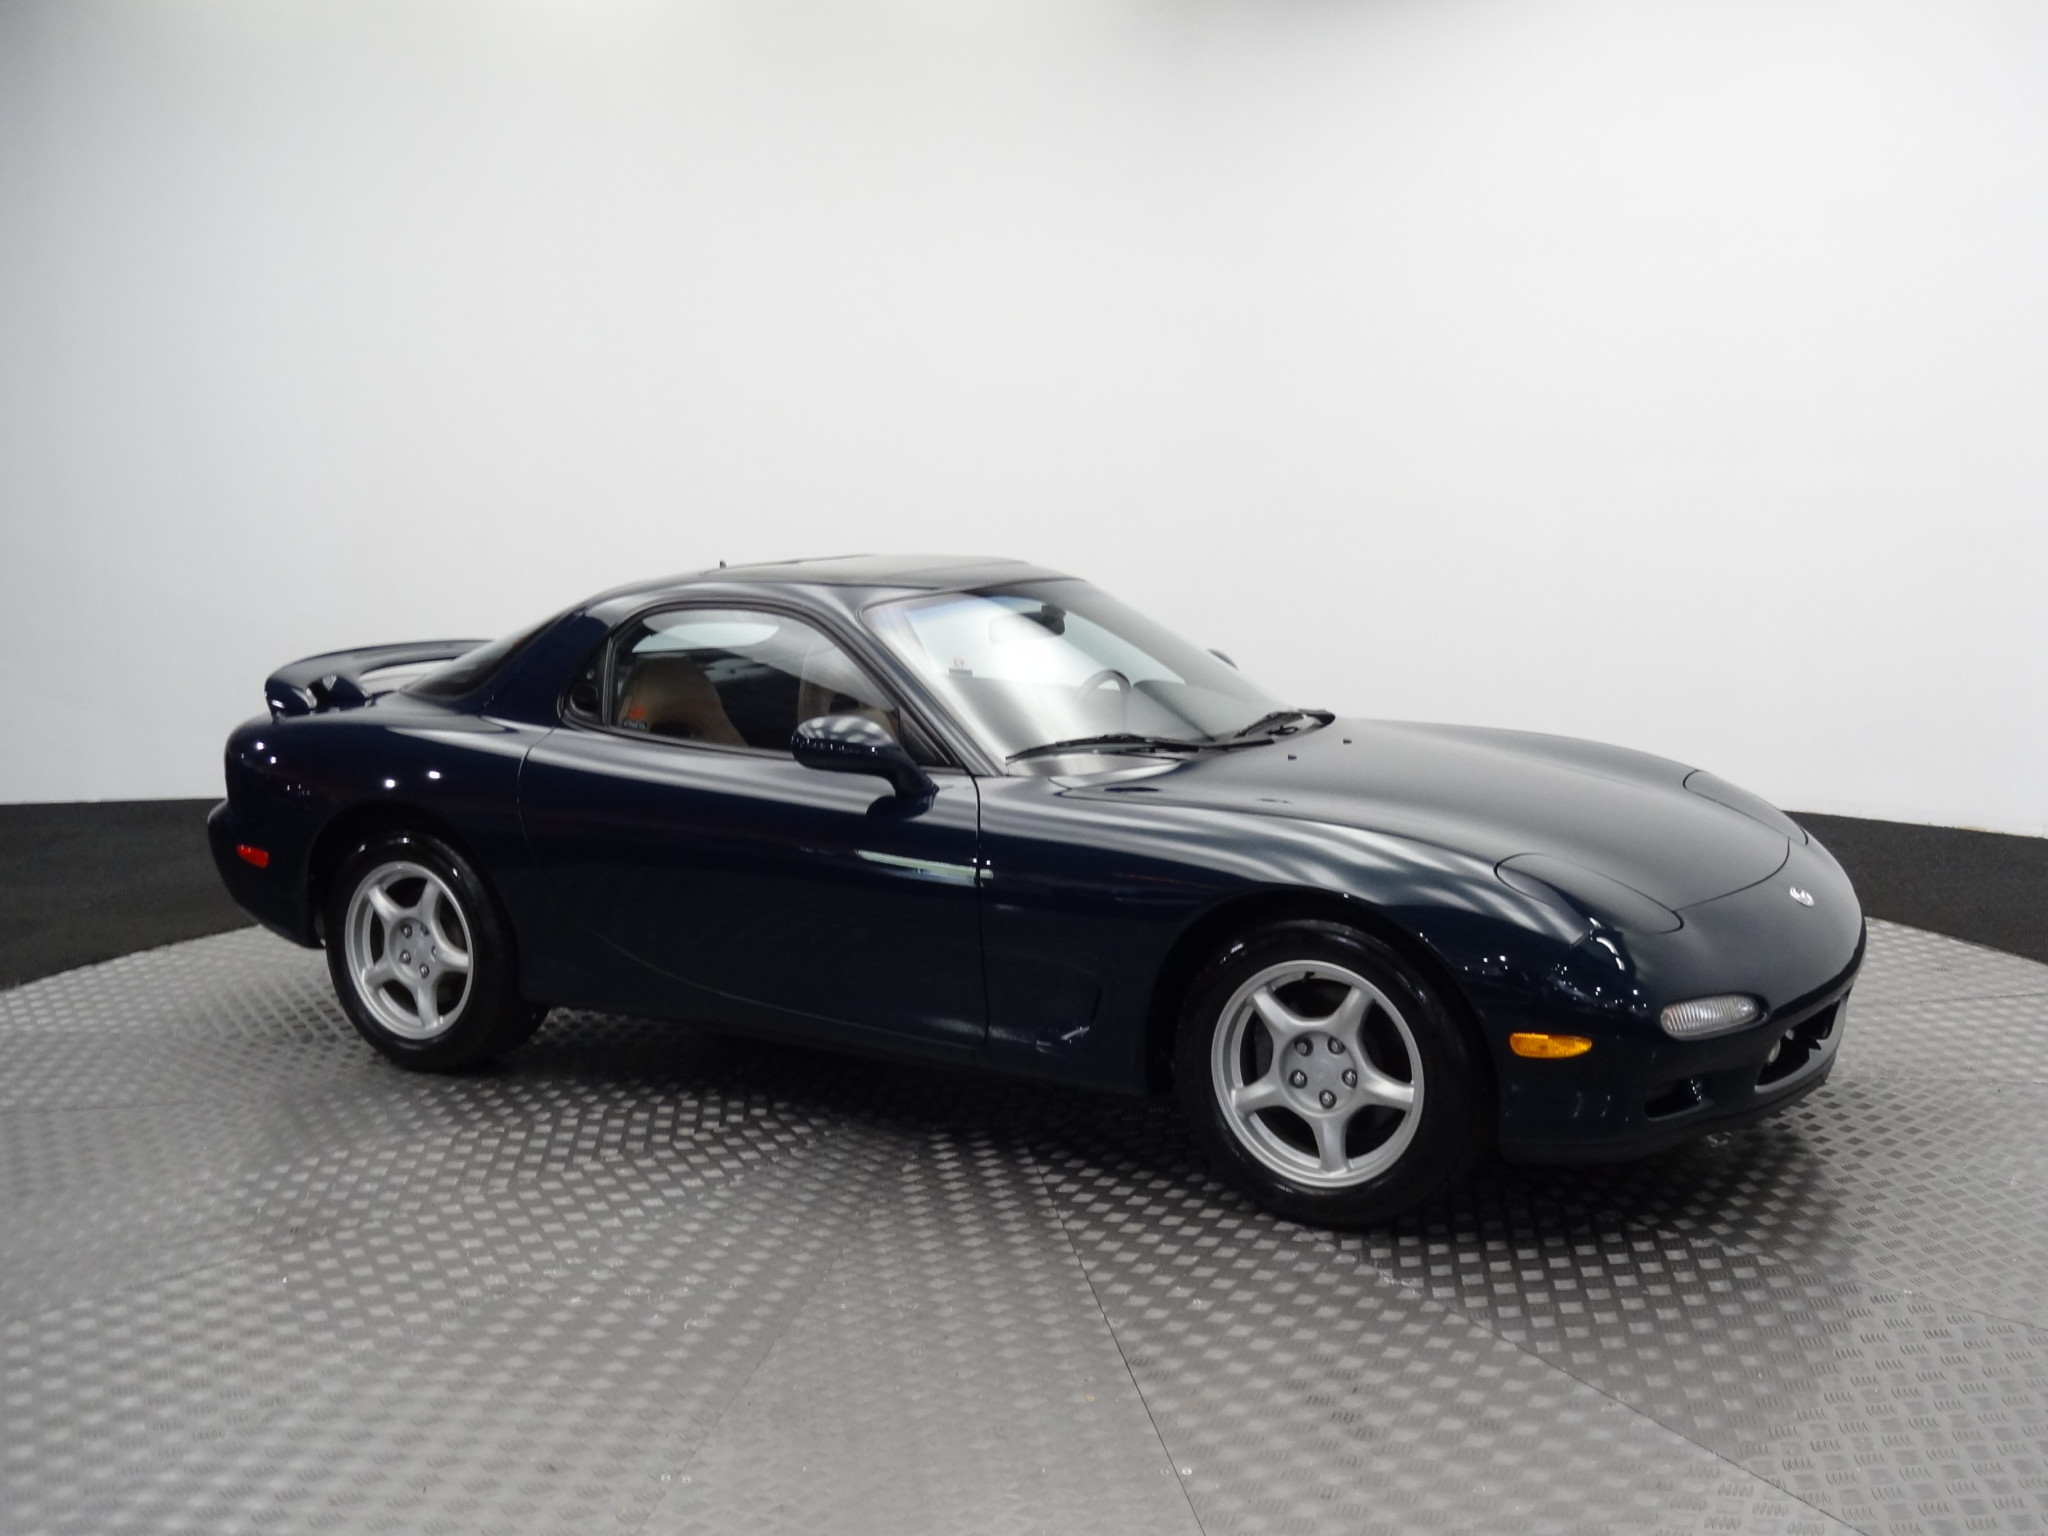 1994_Mazda_RX-7_for_sale_0013